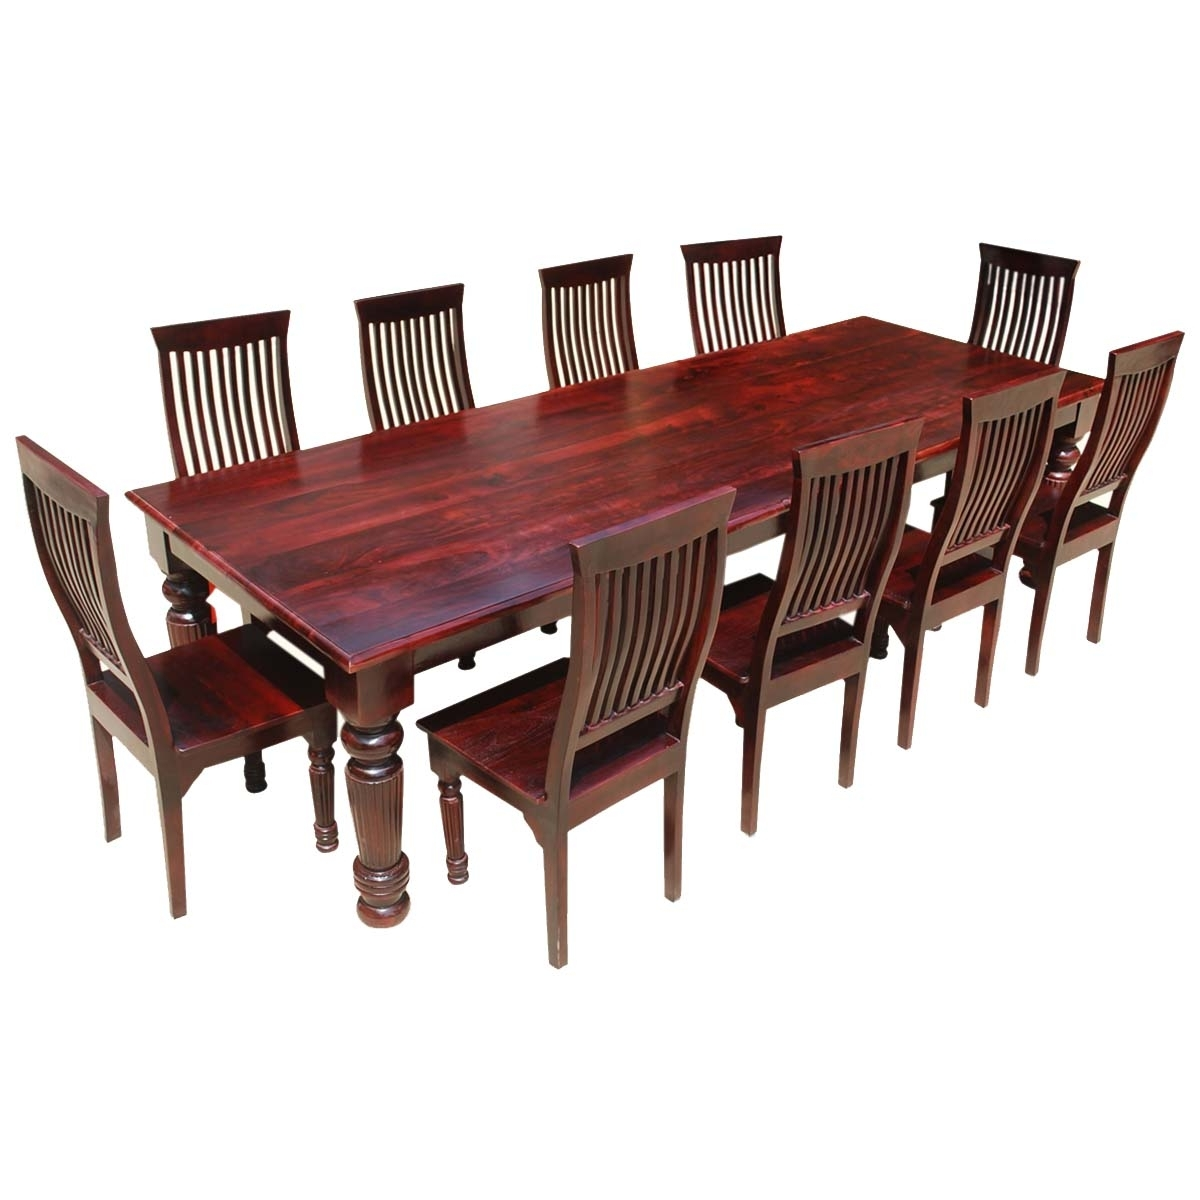 Colonial American Large Rustic Wood Dining Table And 10 Chairs Set Intended For Most Recent Dining Table And 10 Chairs (View 3 of 25)